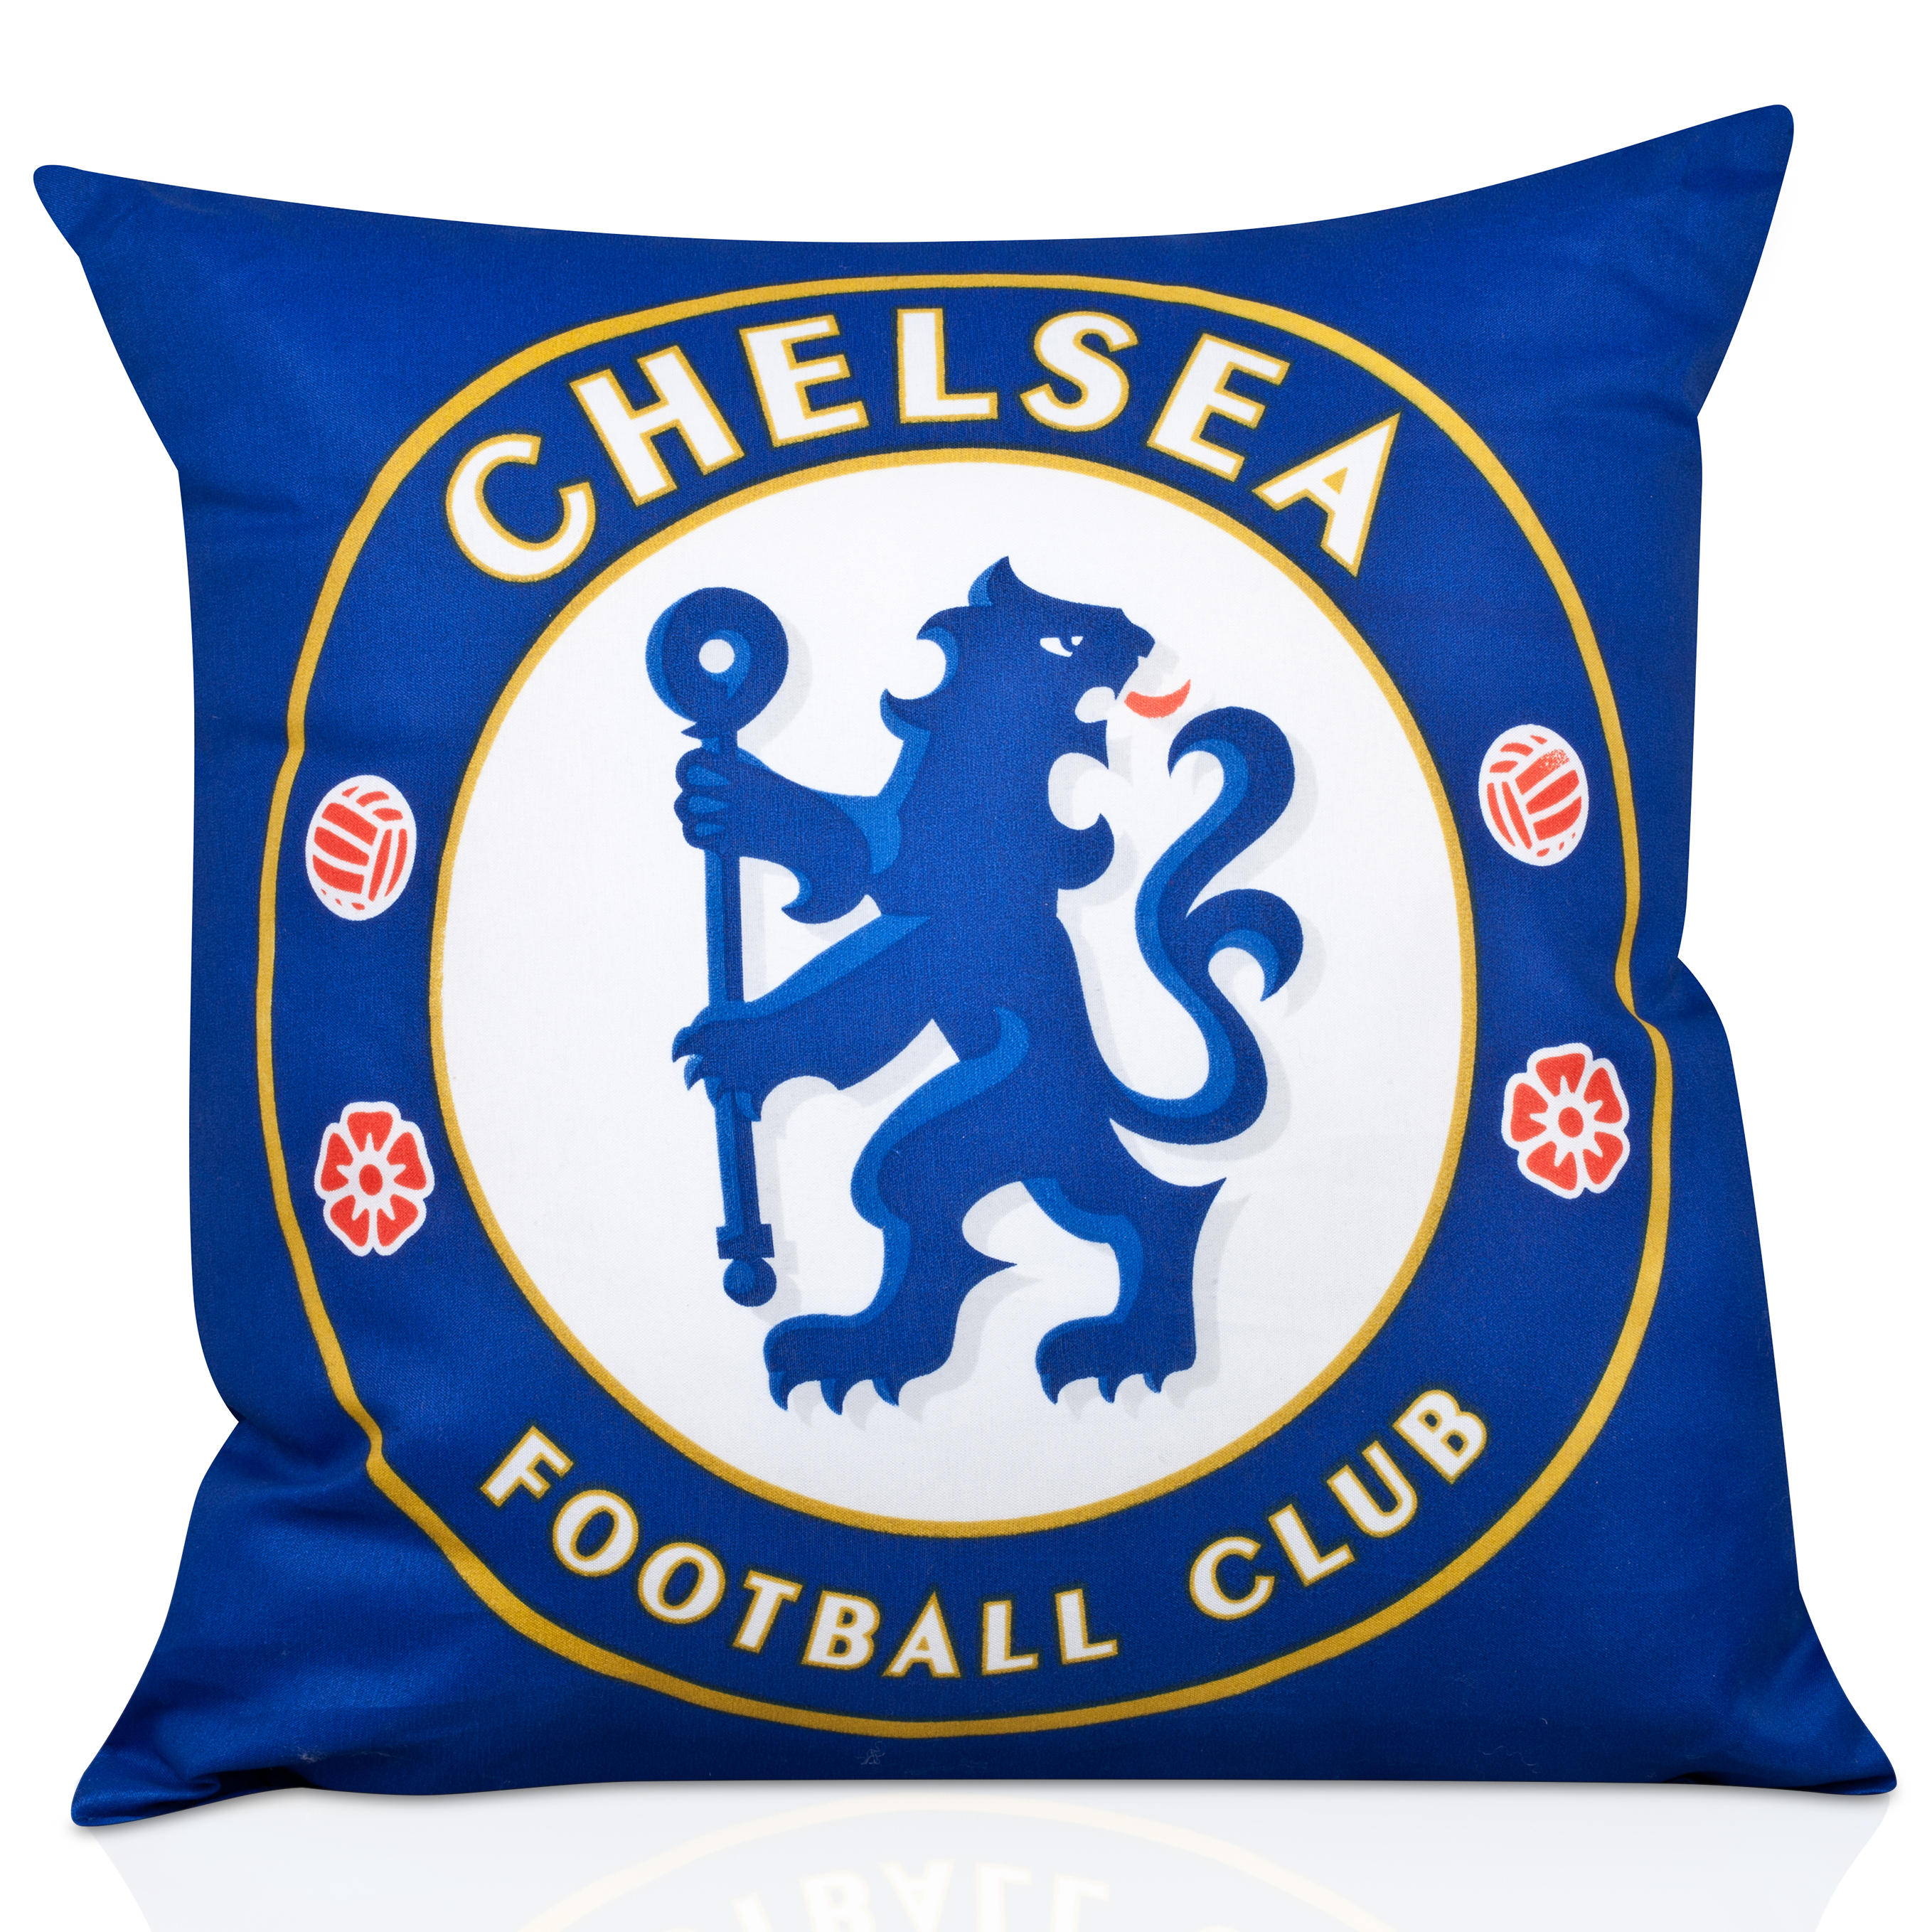 Chelsea Crest Cushion